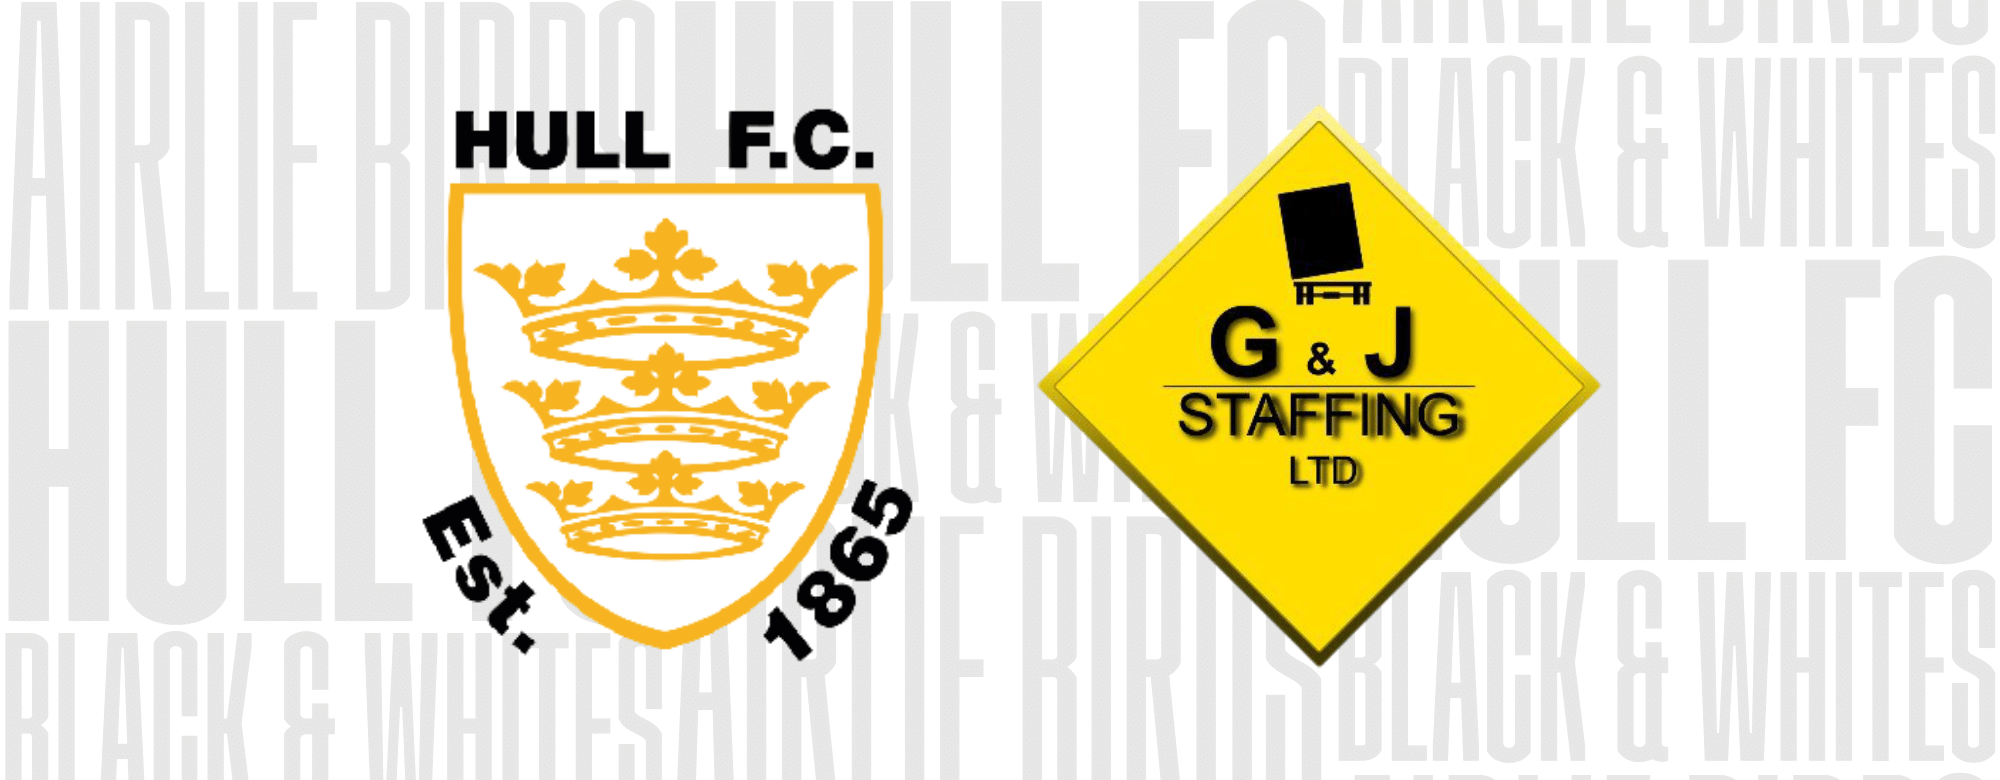 G&J Staffing Continue Academy Sponsorship For 2021 & 2022 Campaigns